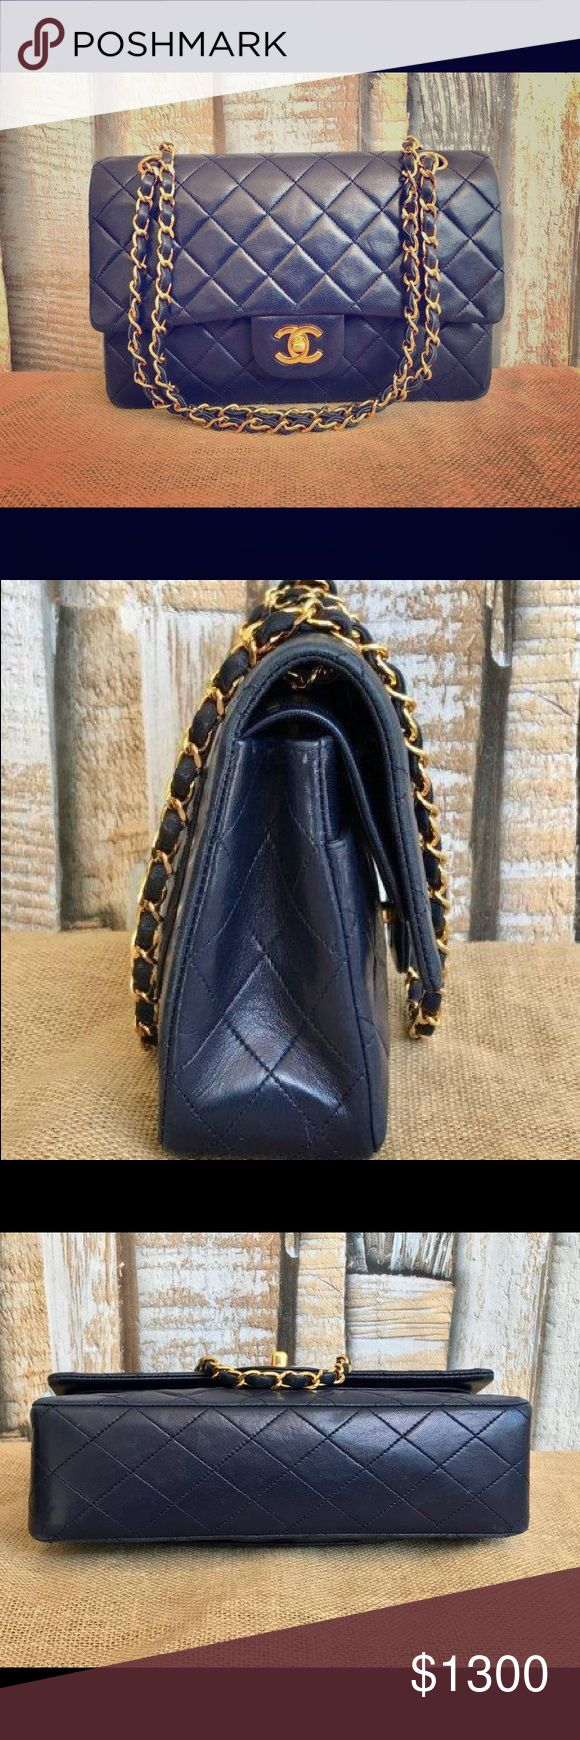 CHANEL Navy Blue Lambskin Leather Double Flap Bag Double Flap Gold SALE Turn Lock - Authentic CHANEL Bags Shoulder Bags